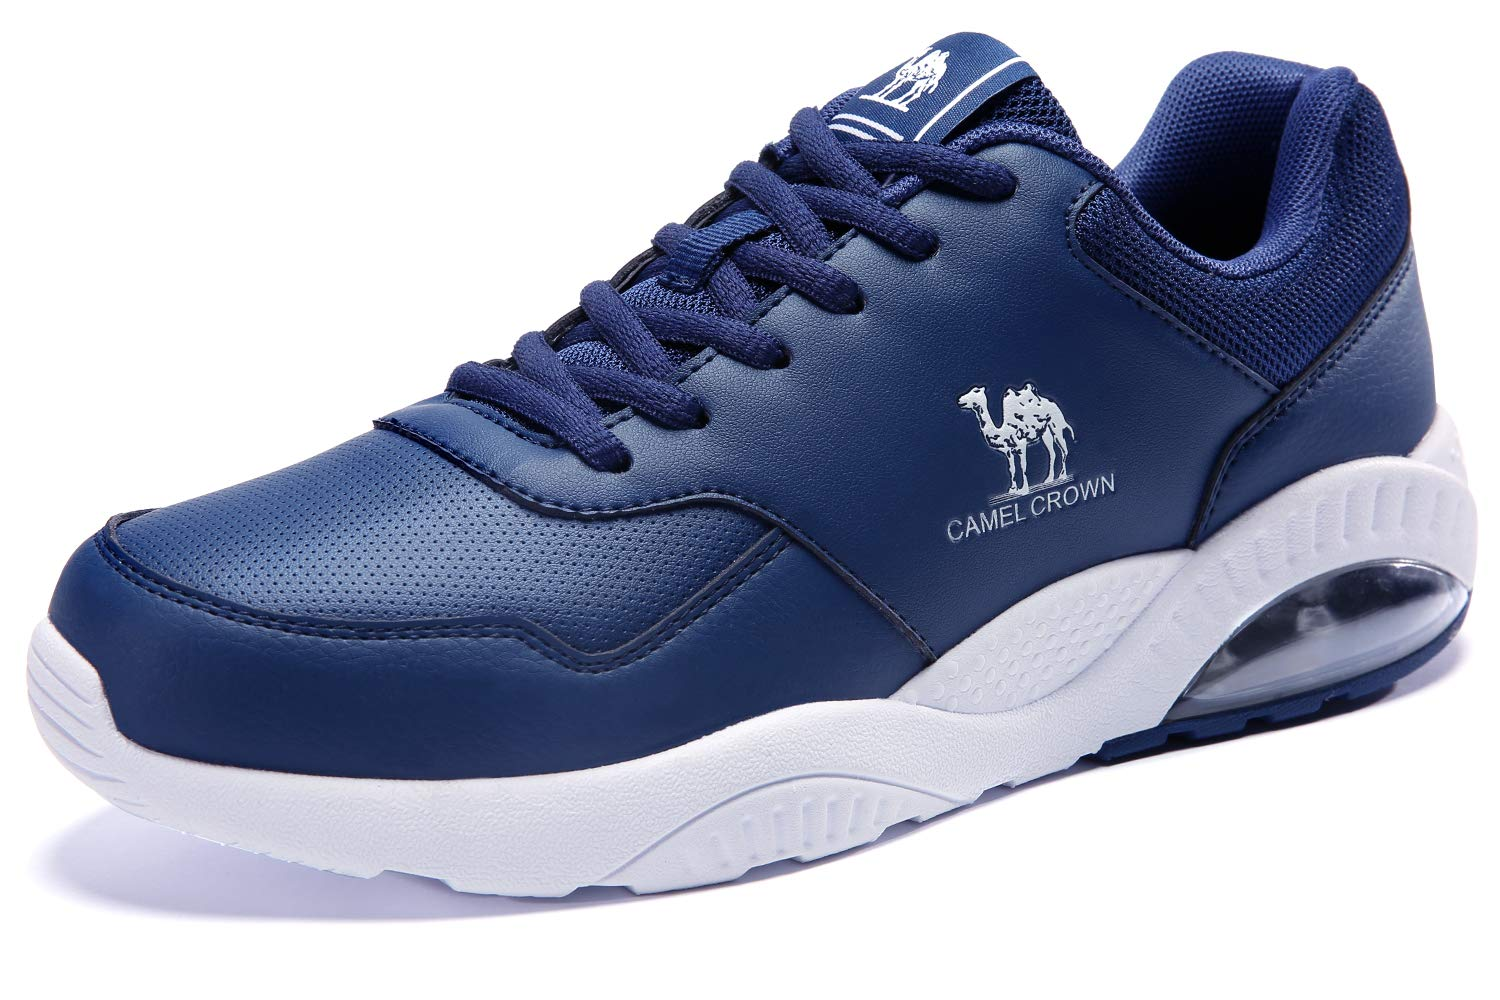 CAMELSPORTS Men's Athletic Sneakers Air Cushioned Running Shoes for Tennis, Gym, Training, Sports, Walking